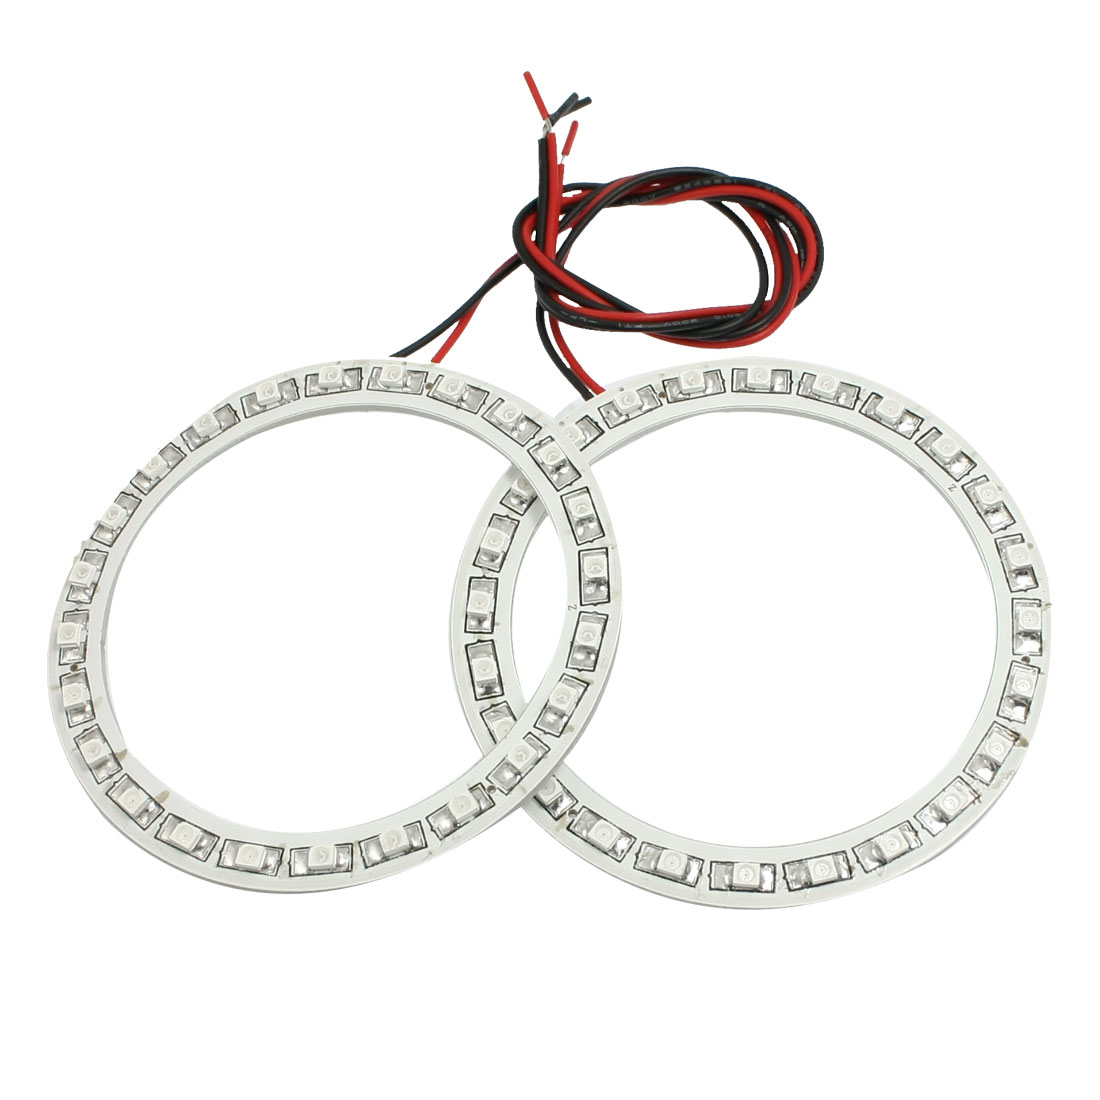 2 Pcs 80mm Dia Red 24-SMD LED Car Rear Angel Eyes Ring Light